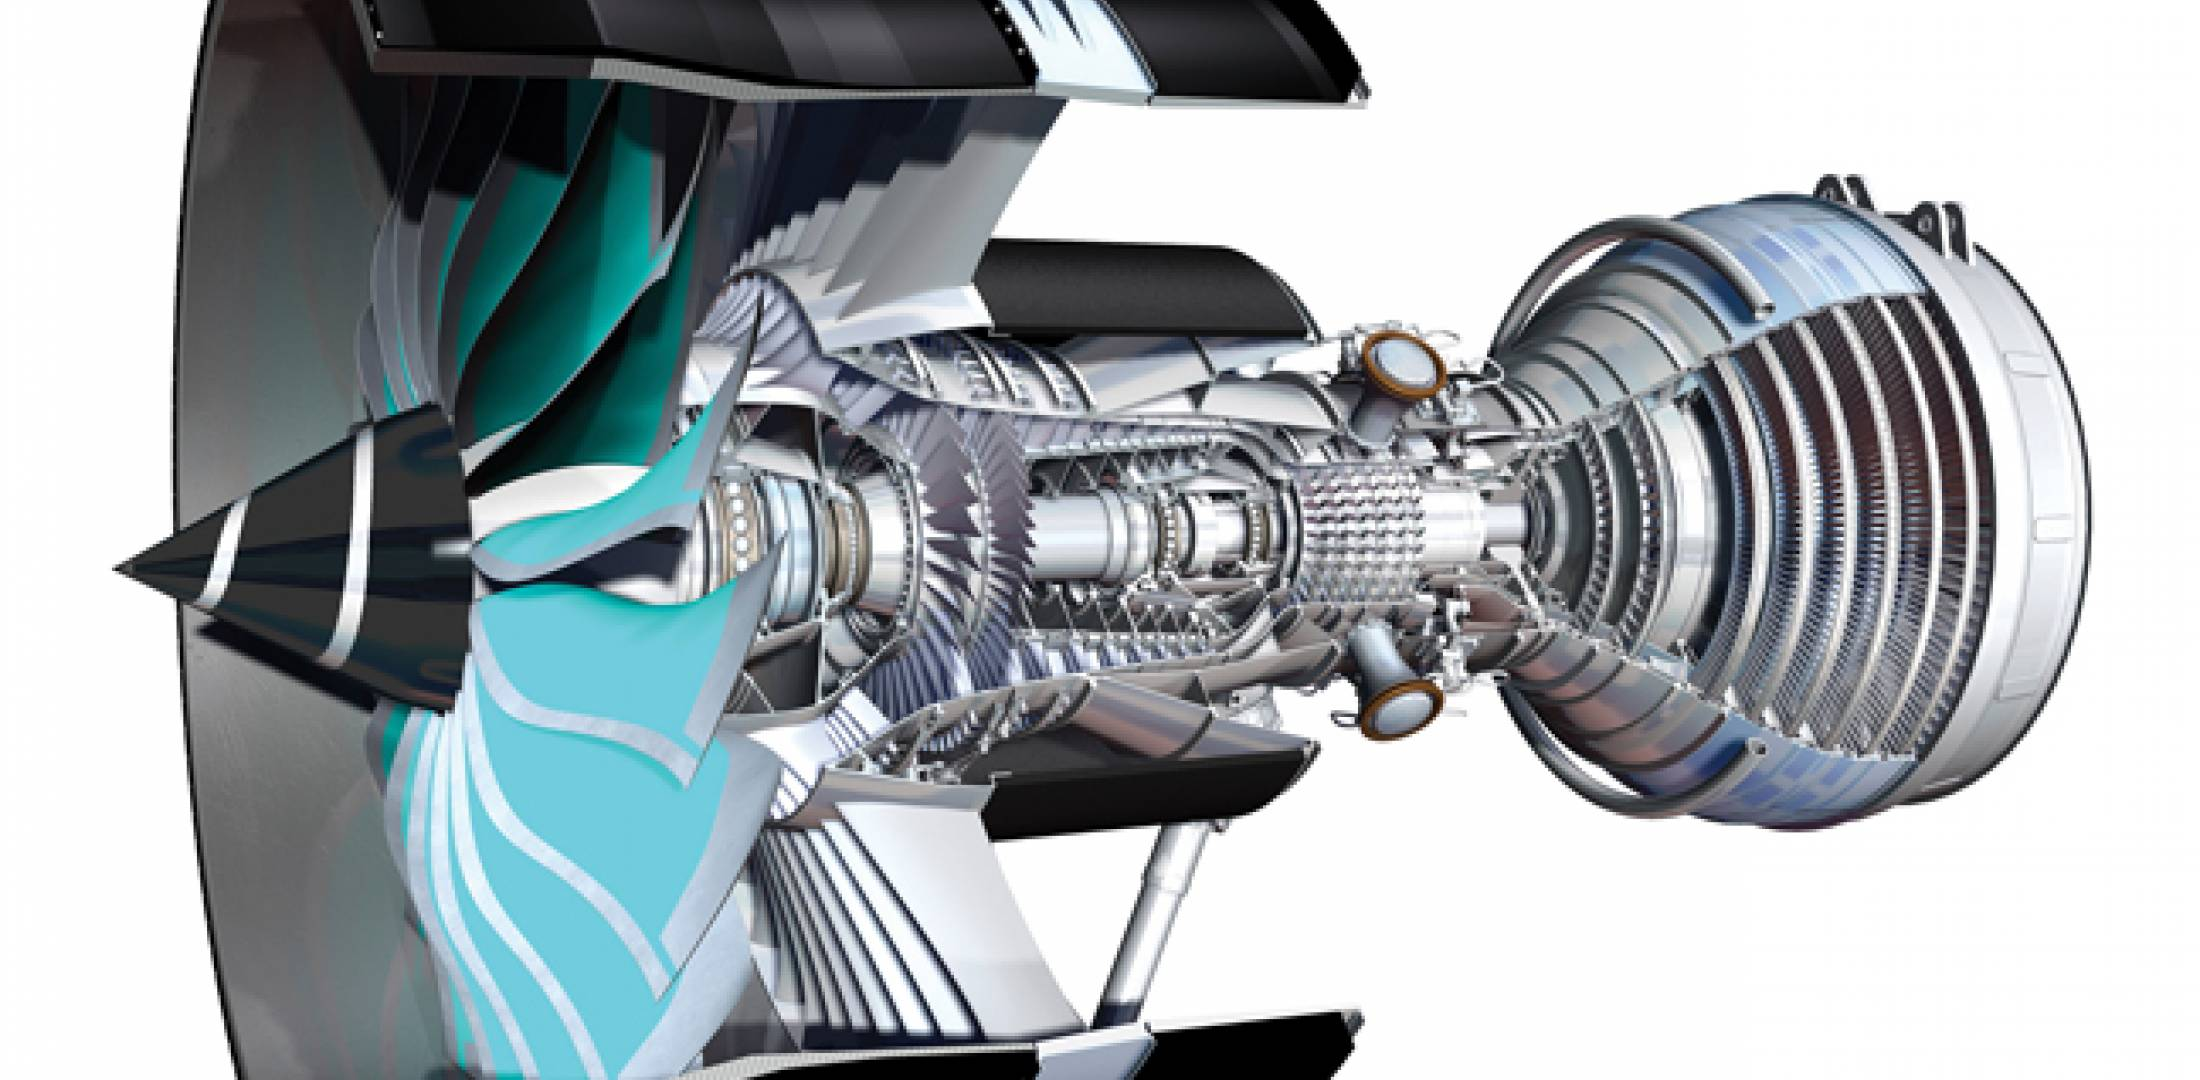 """Titanium-aluminide low-pressure turbine blades and proposed cooling arrangements on Rolls-Royce's proposed future UltraFan engine may owe much to the RB3025 powerplant unsuccessfully offered to power the Boeing 777X. For example, the RB3025 featured a """"vortex amplifier"""" to simplify turbine-blade cooling with HPC air."""